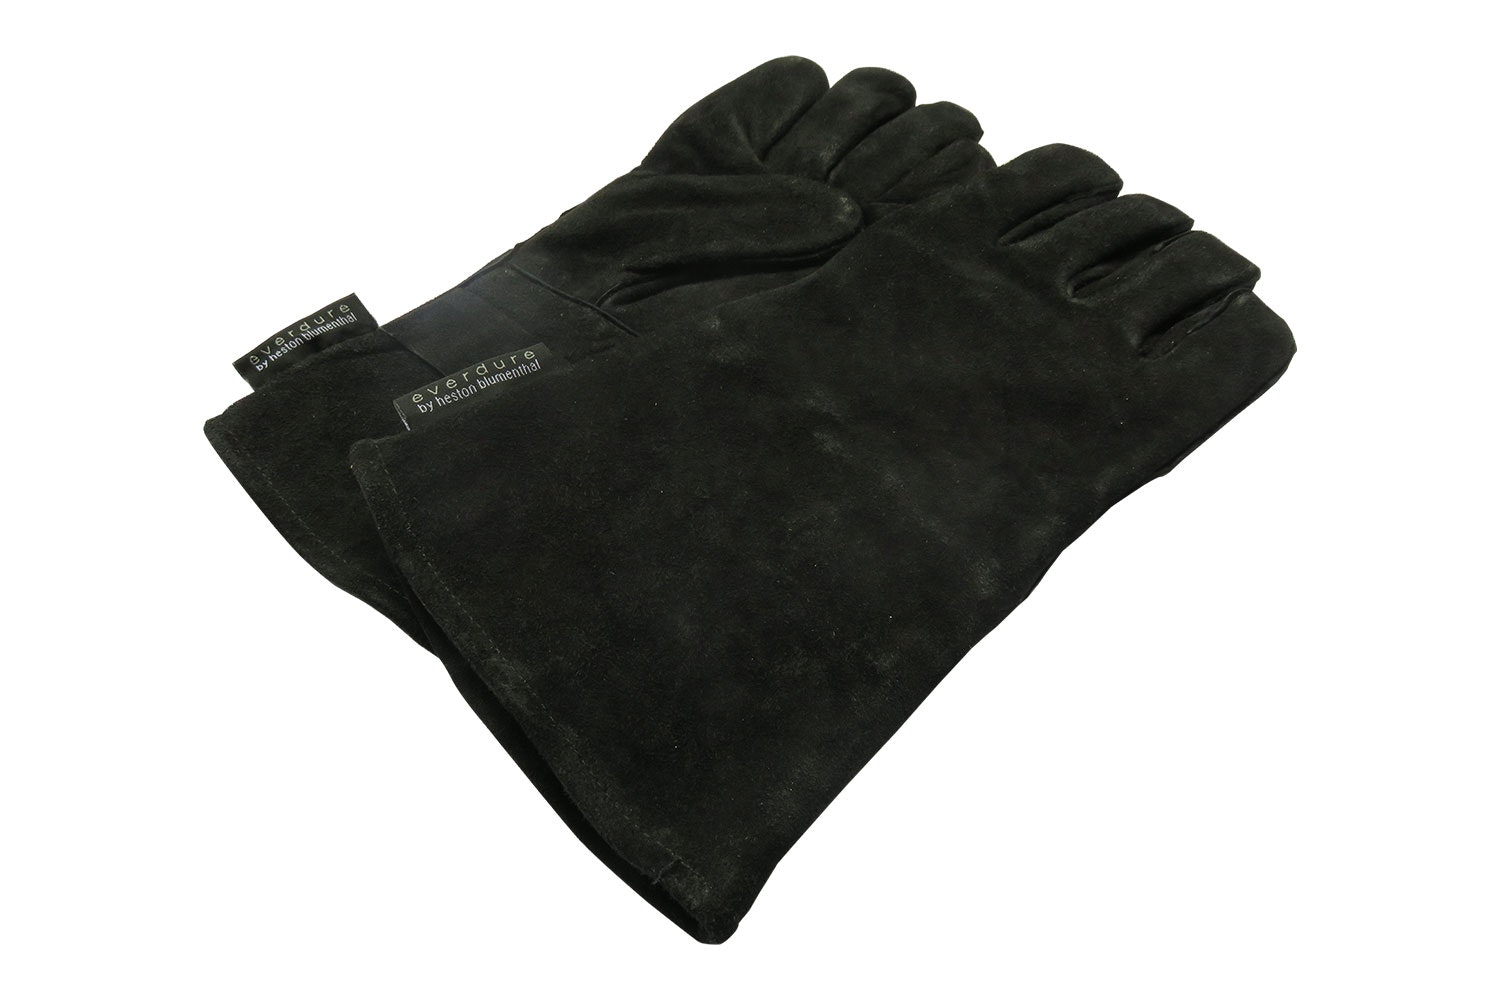 Everdure Heat Resistant Leather Gloves by Heston Blumenthal